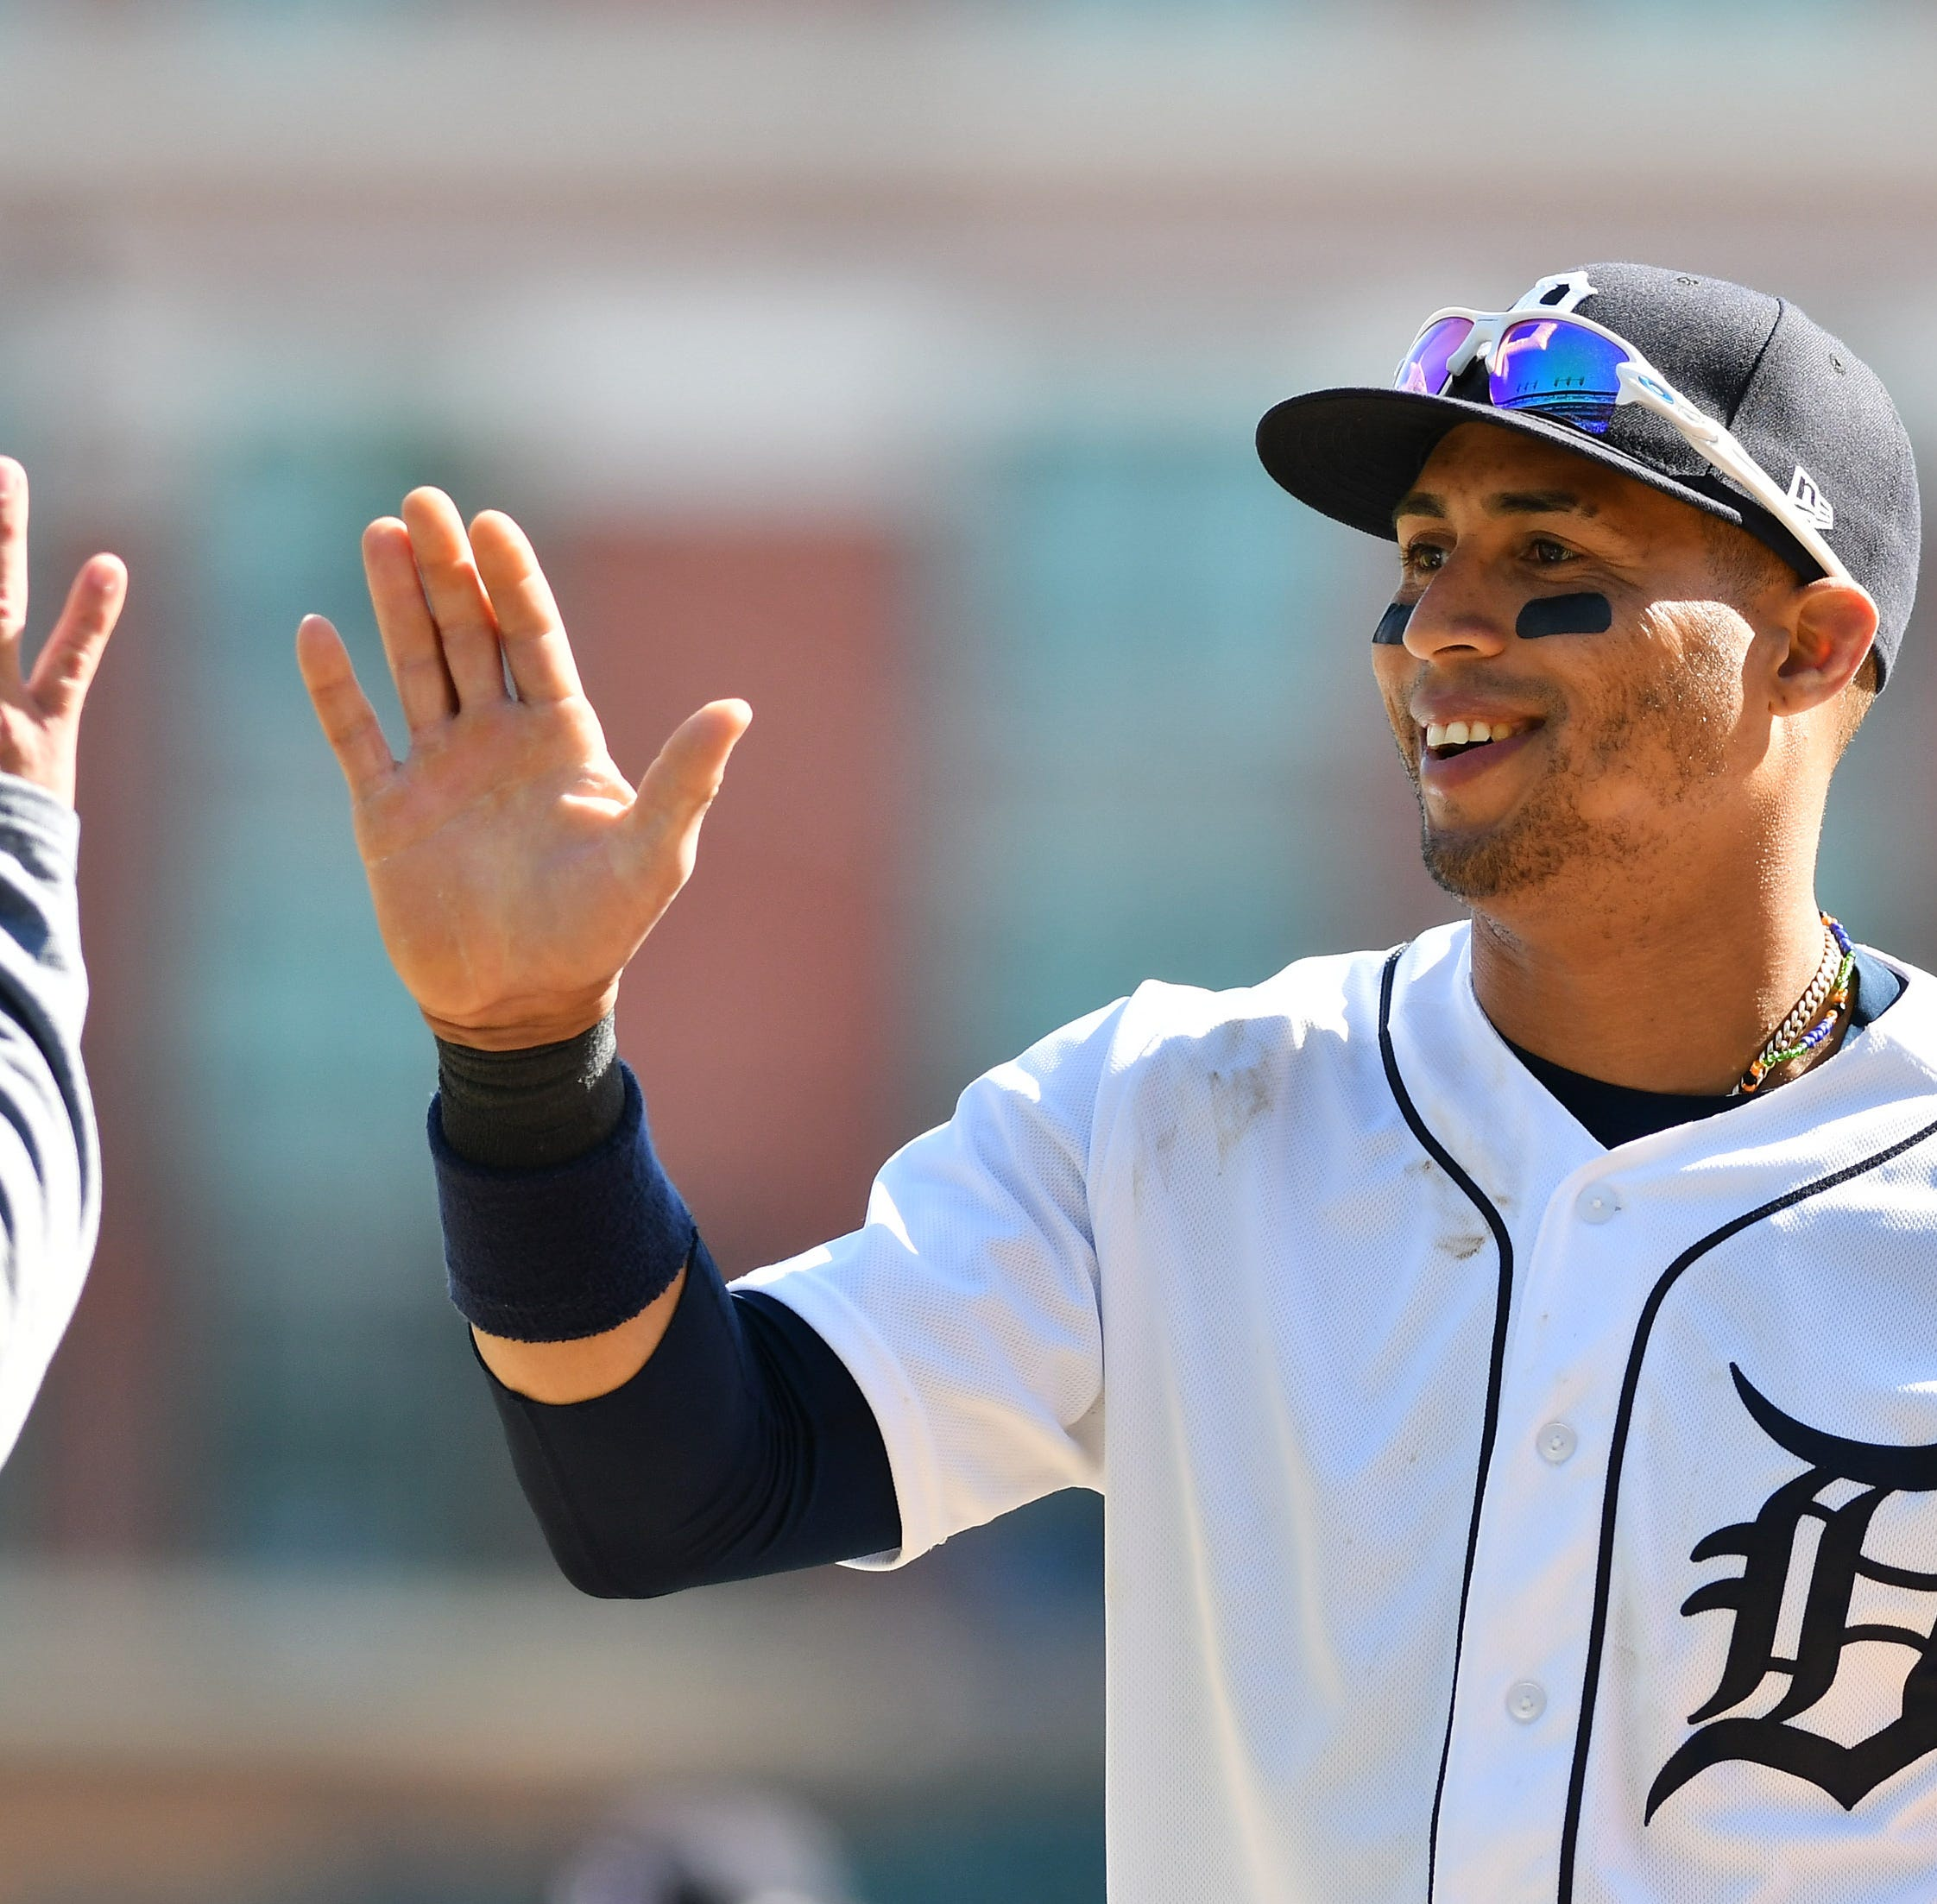 Tigers' prayers answered, Martin recovering from potentially-grave infection